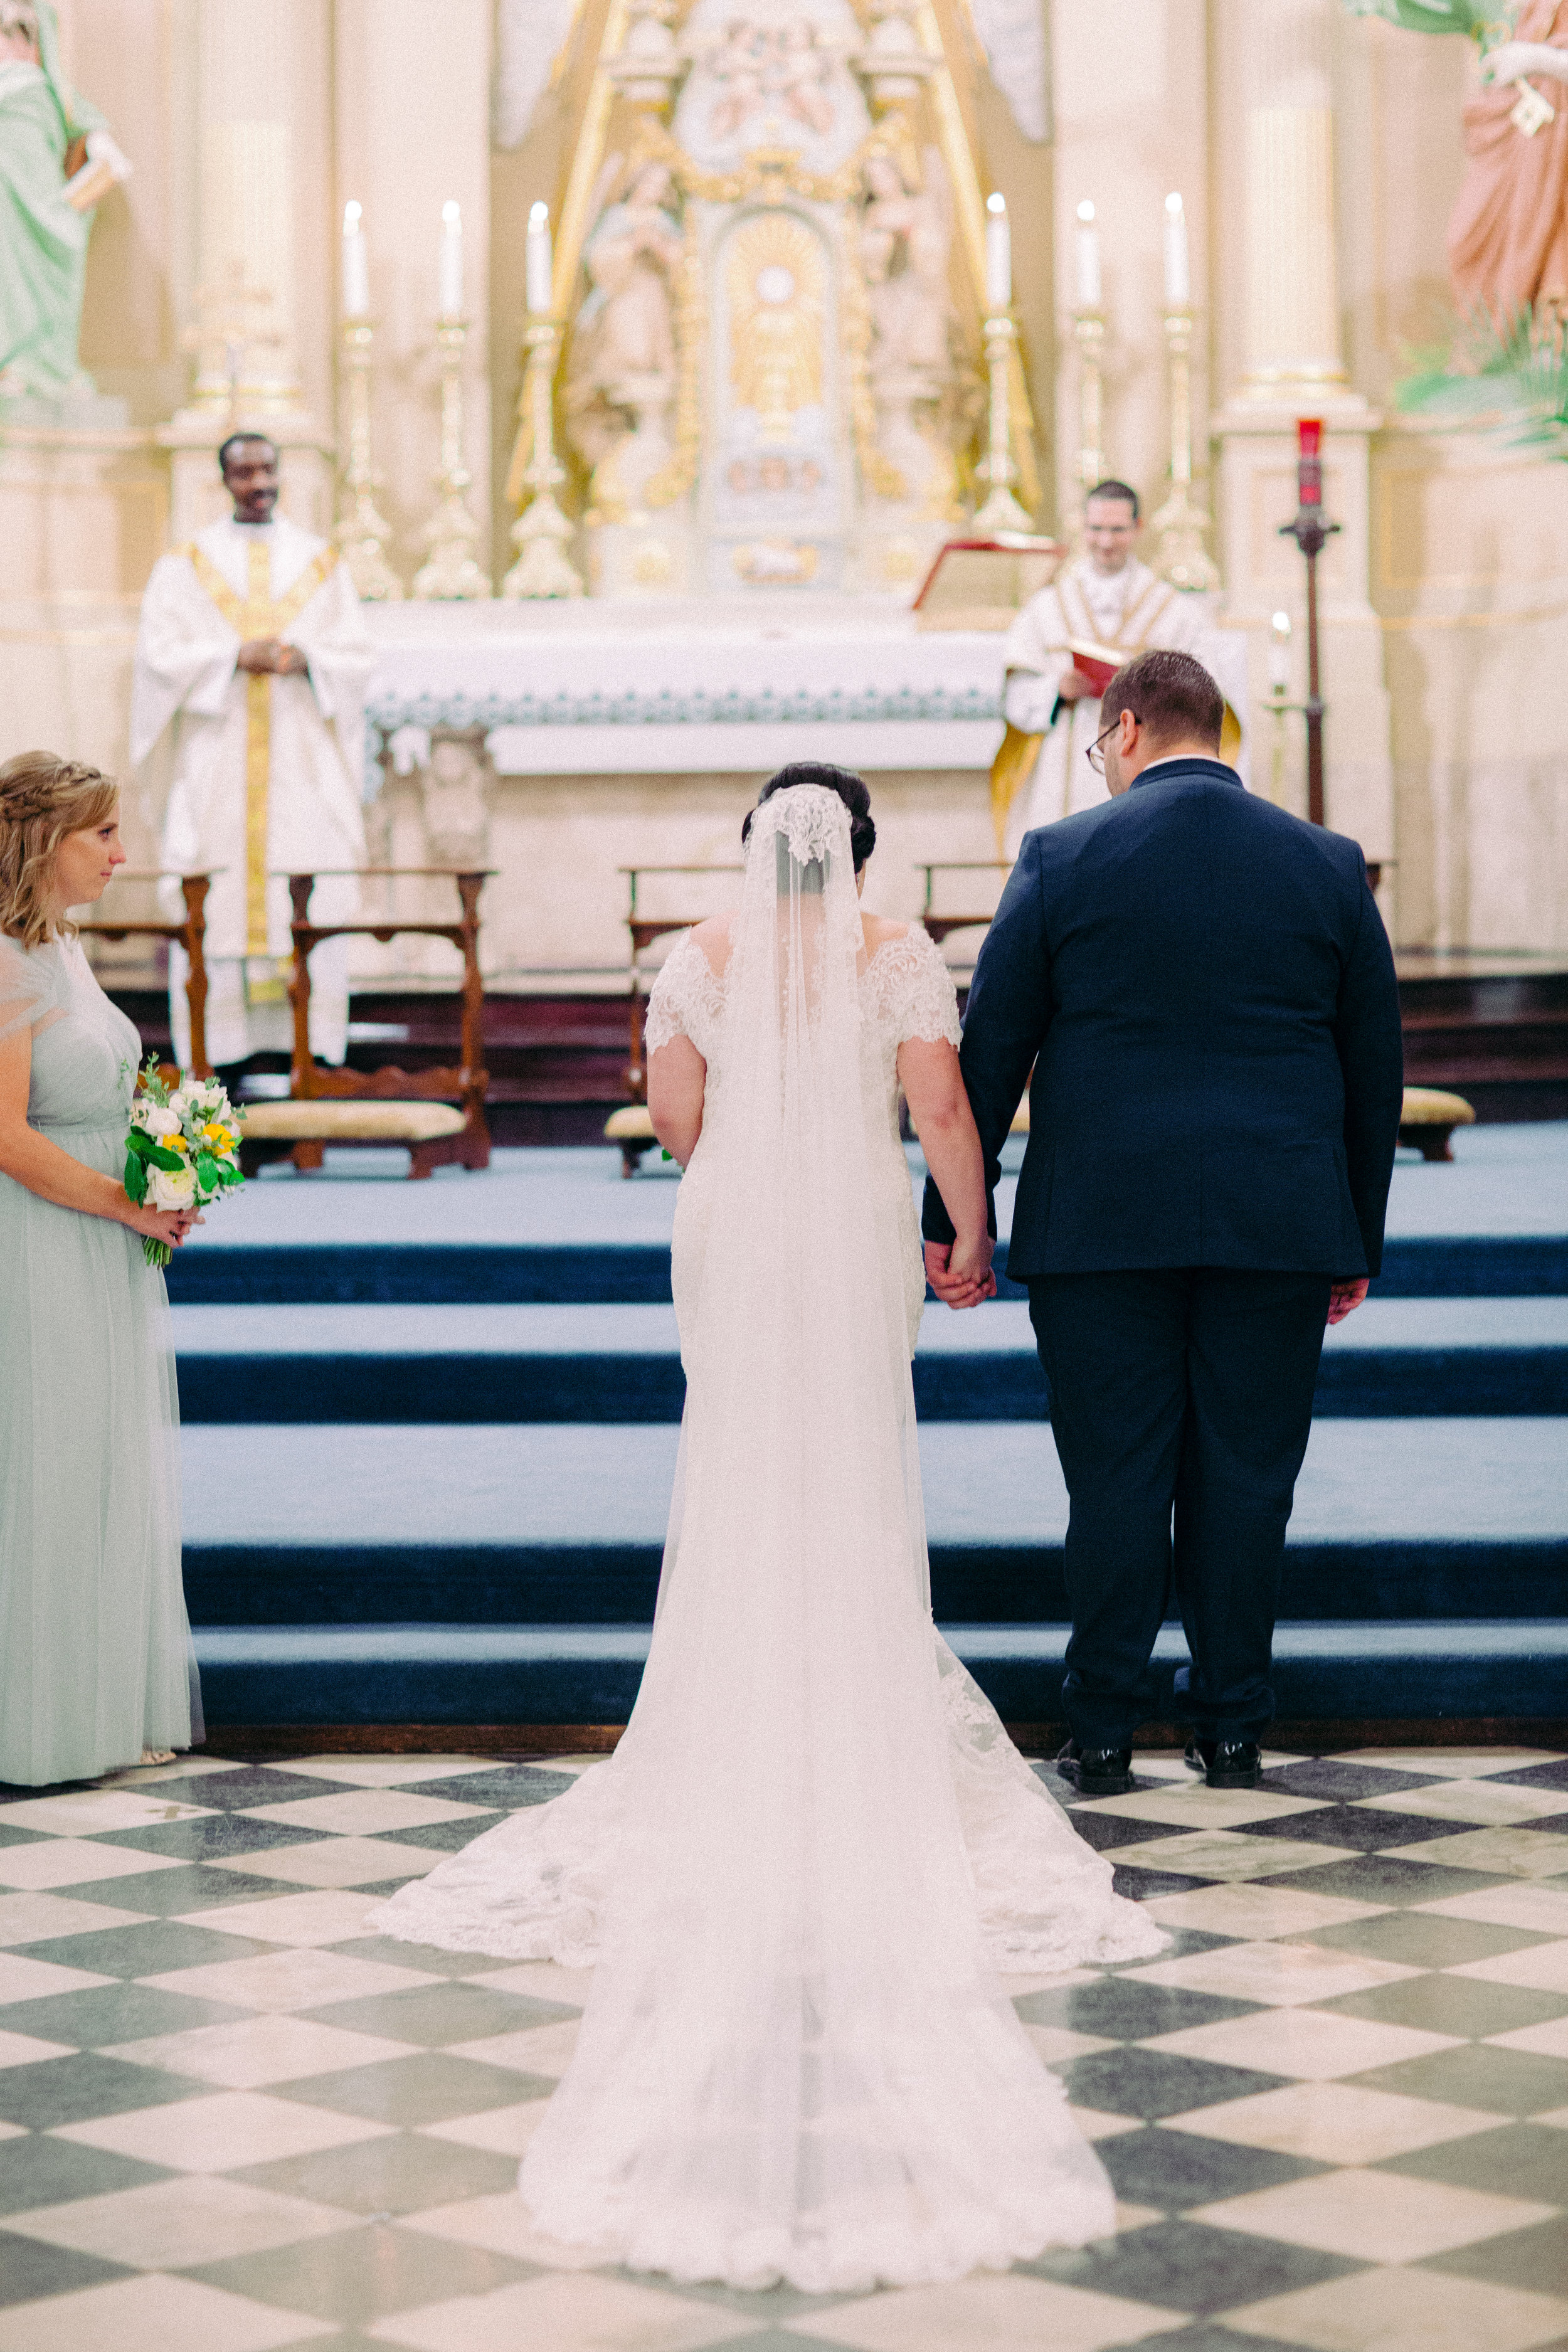 catholic wedding at a basilica in new orleans. Bride wearing madrid mantilla veil by girl and a serious dream to classic wedding in new orleans